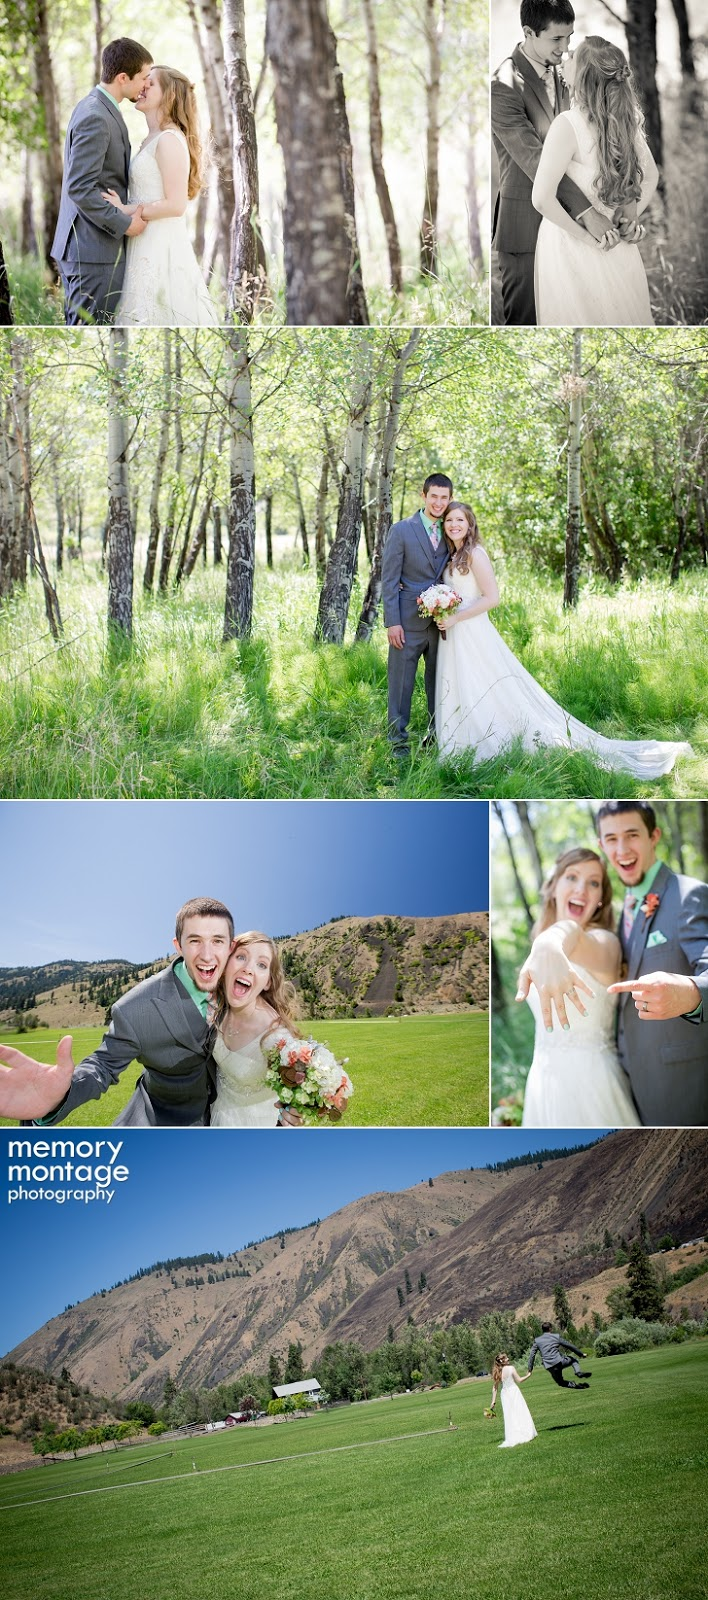 American Homestead Wedding, Yakima Wedding Photography, Yakima Wedding Photographers, Country Wedding, DIY Wedding, Rustic Wedding, Memory Montage Photography